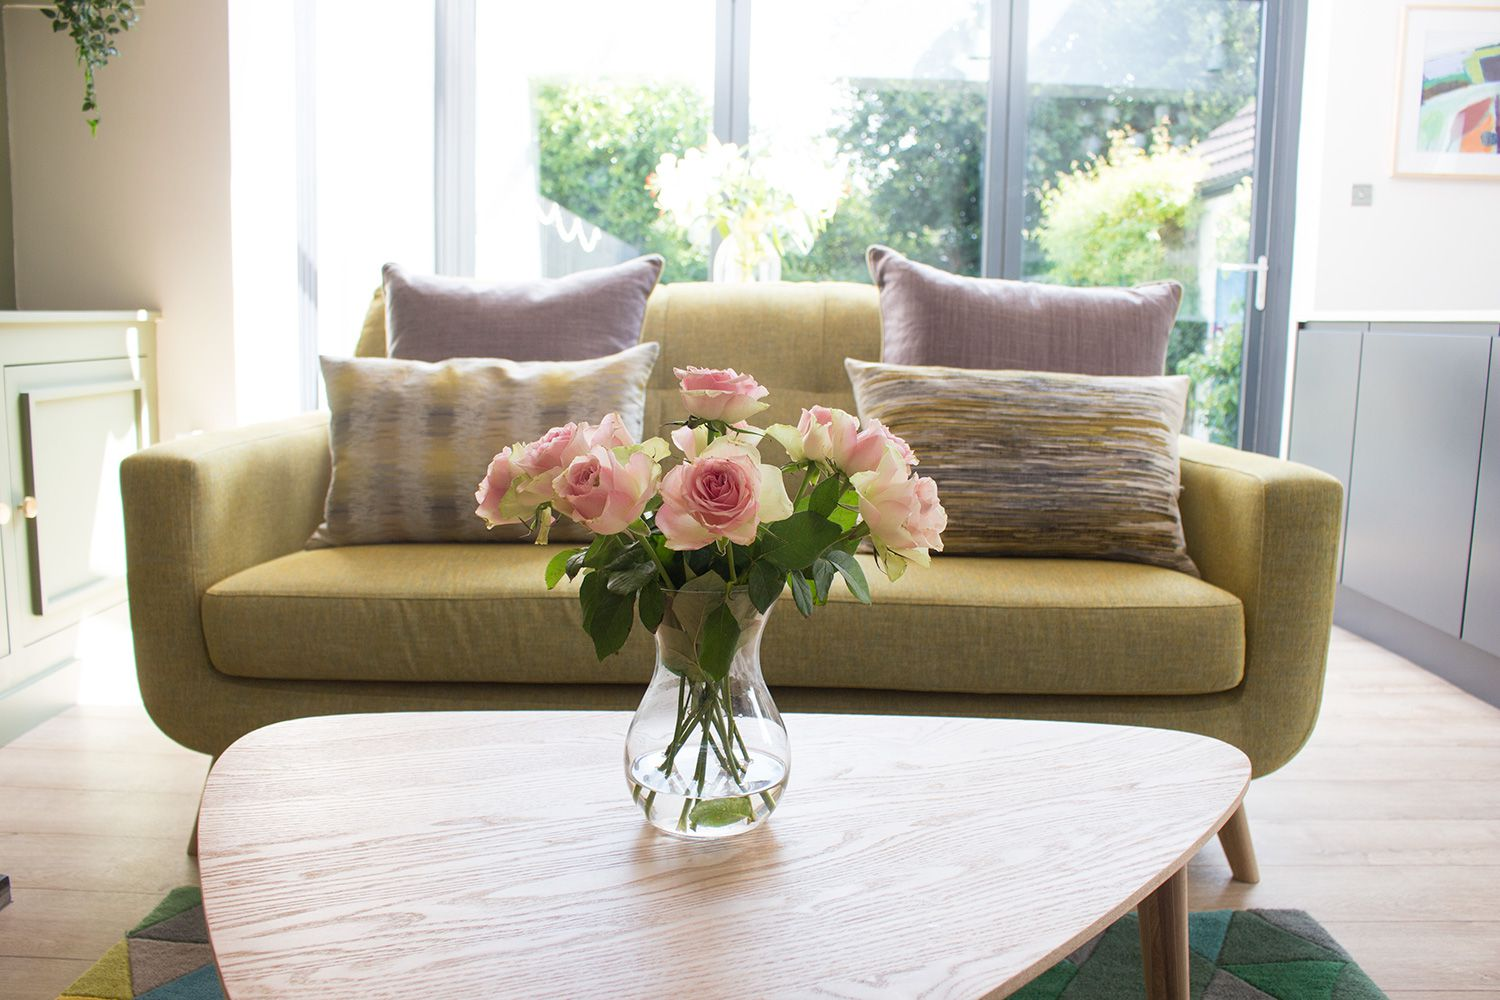 A view of the pale green sofa with the oak coffee table and fresh flowers in front.